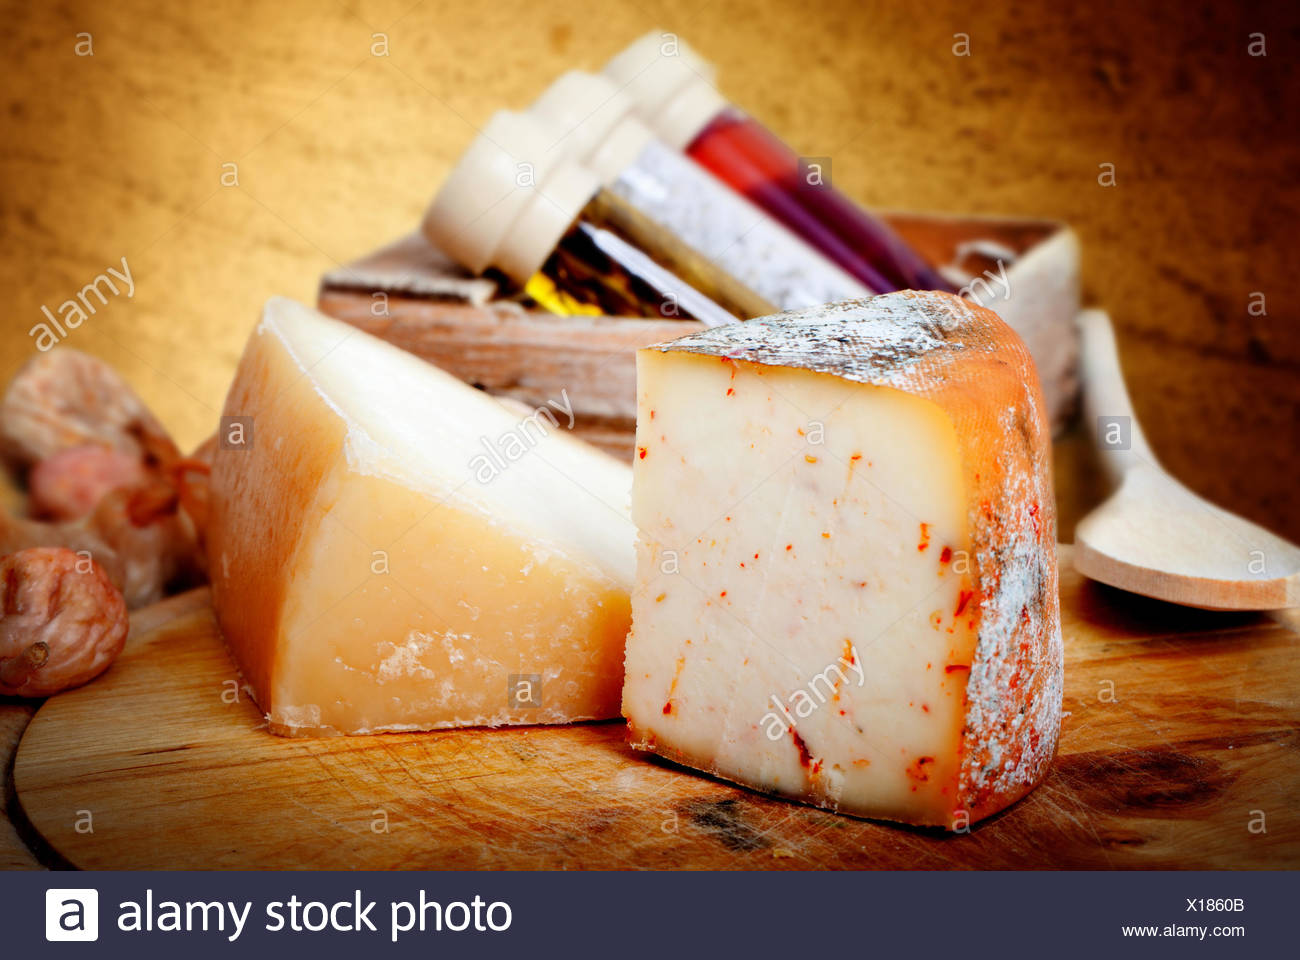 cheese composition - Stock Image